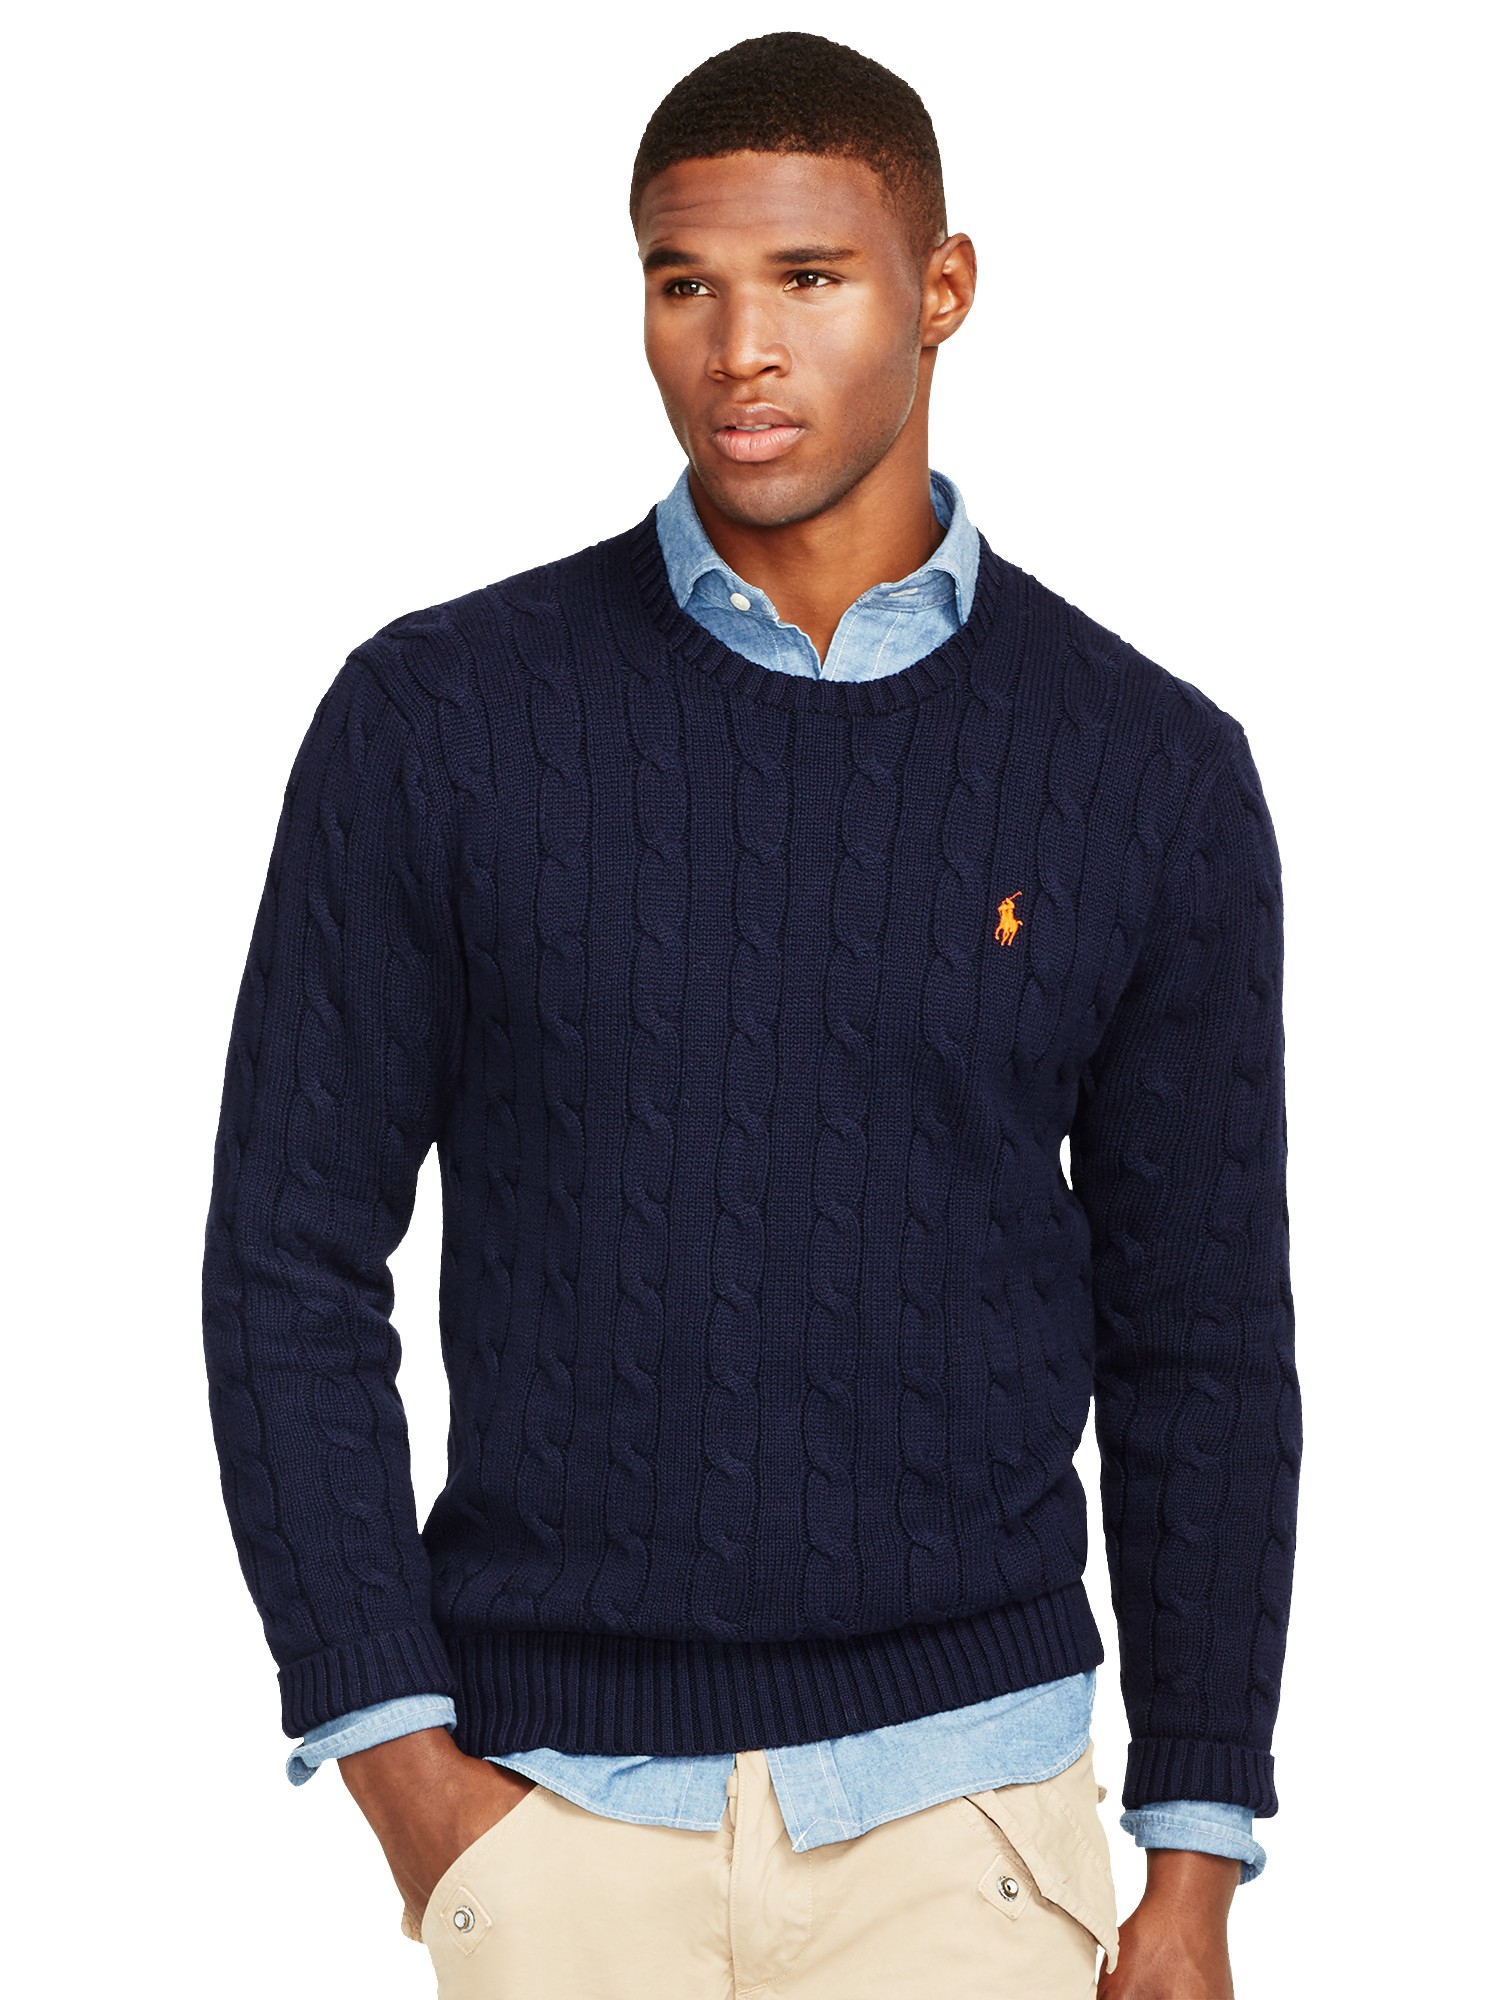 1ae97416e Polo Ralph Lauren Cable Knit Crew Neck Jumper in Blue for Men - Lyst